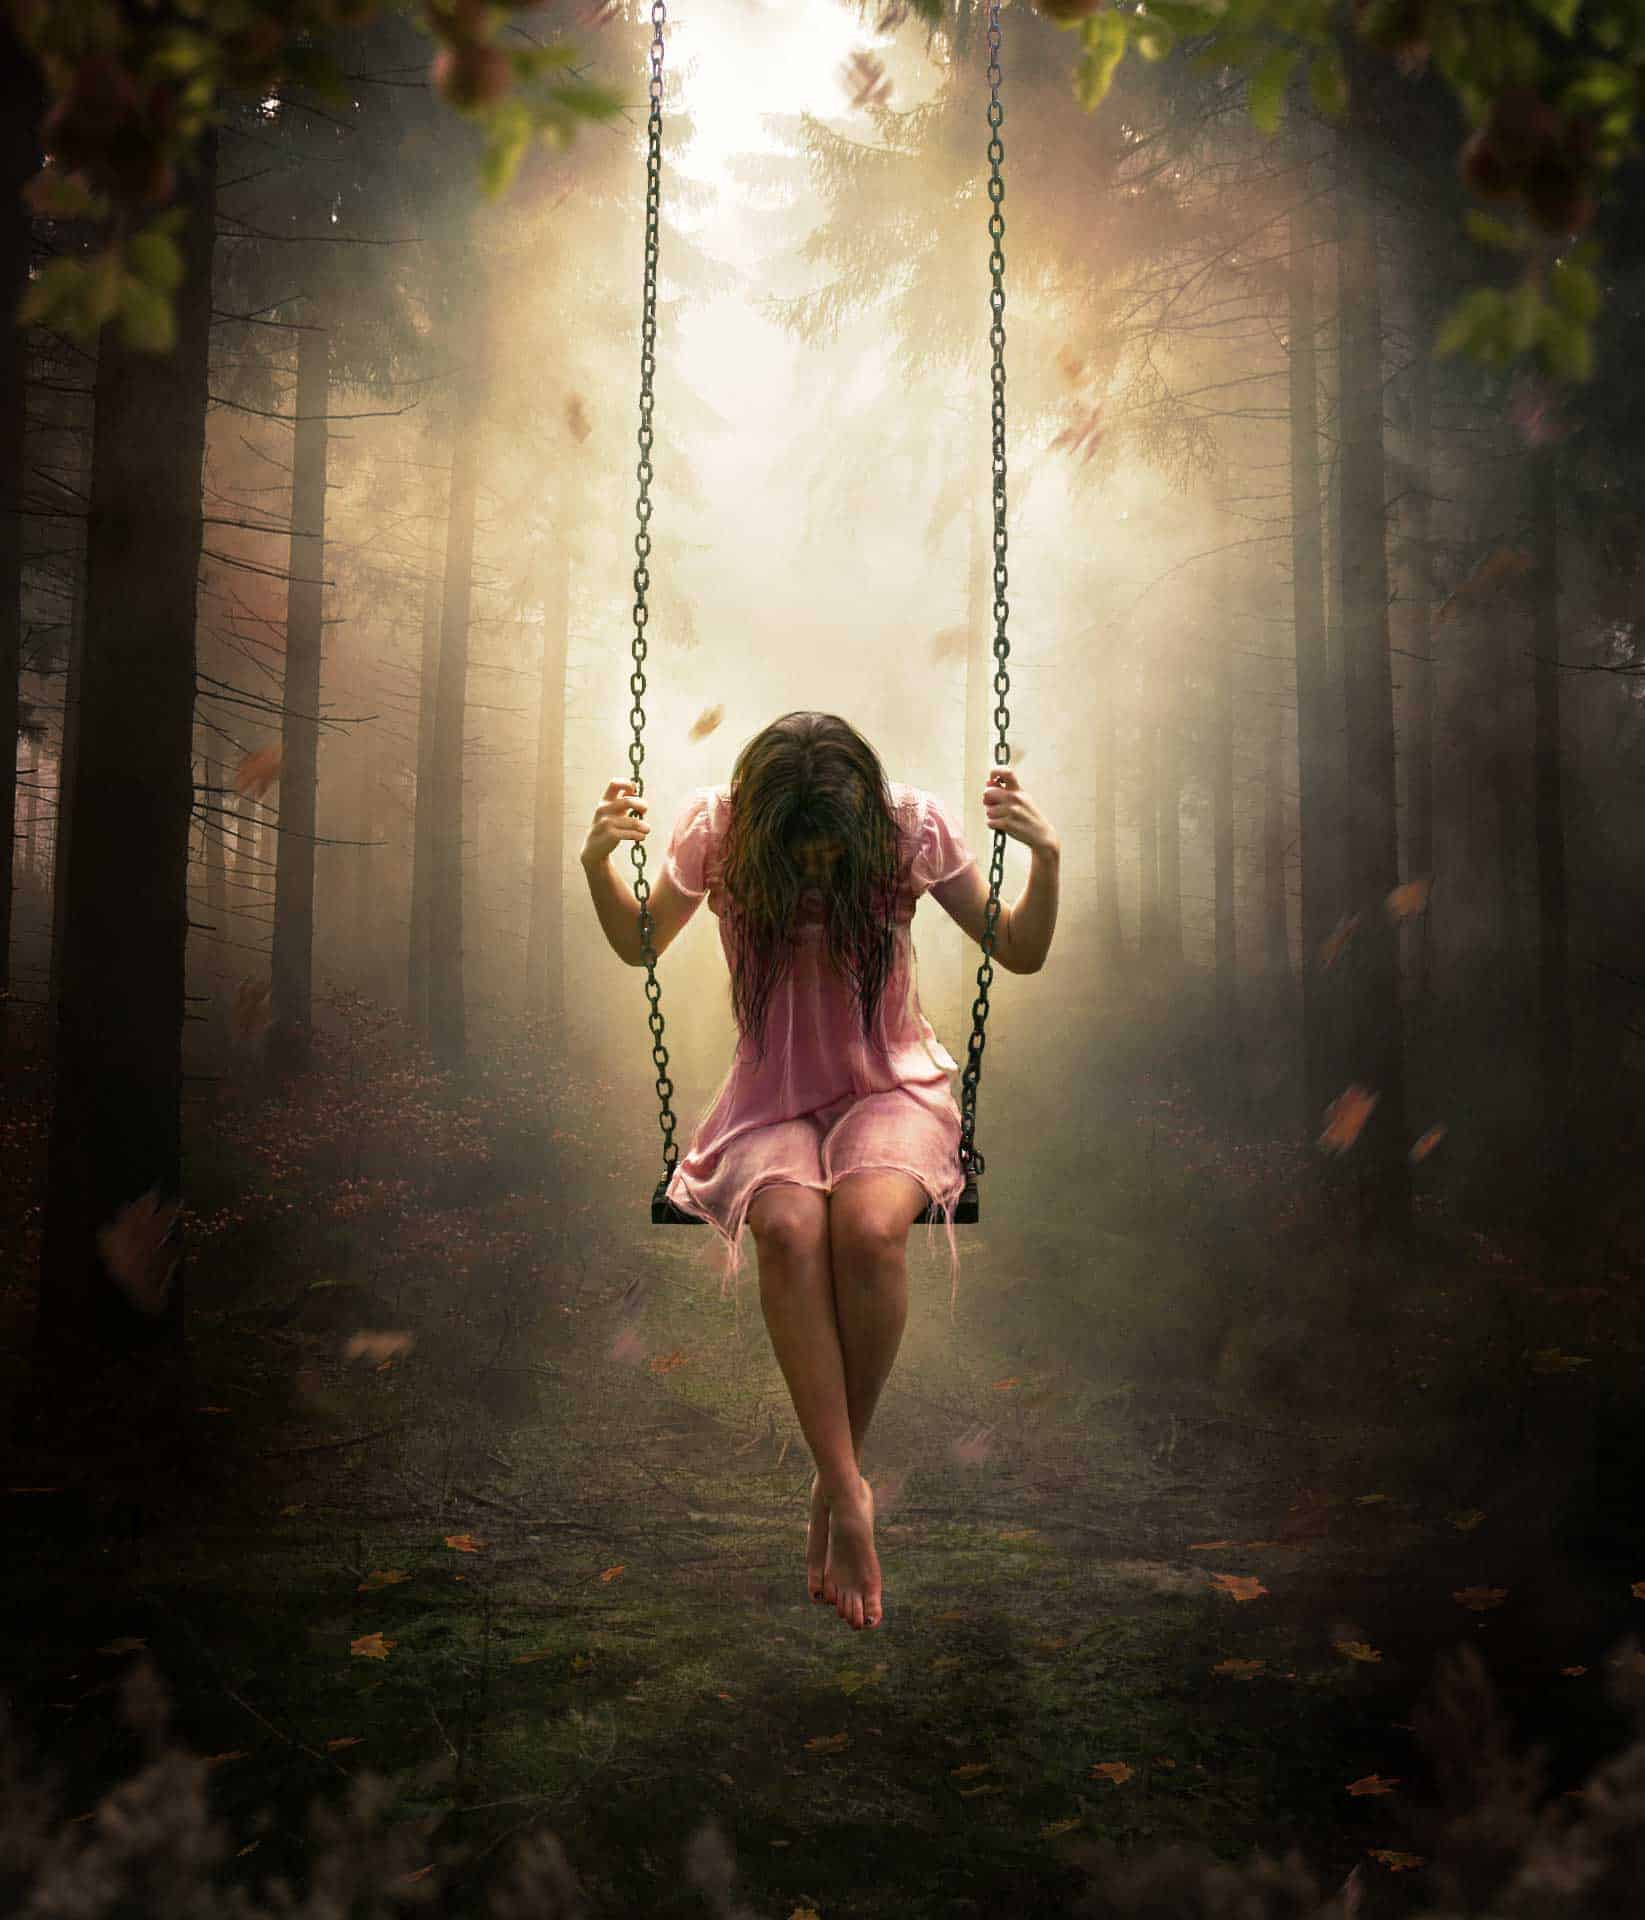 Create a Dreamlike Photo Manipulation of an Emotional Girl with a Dramatic Lighting in Photoshop